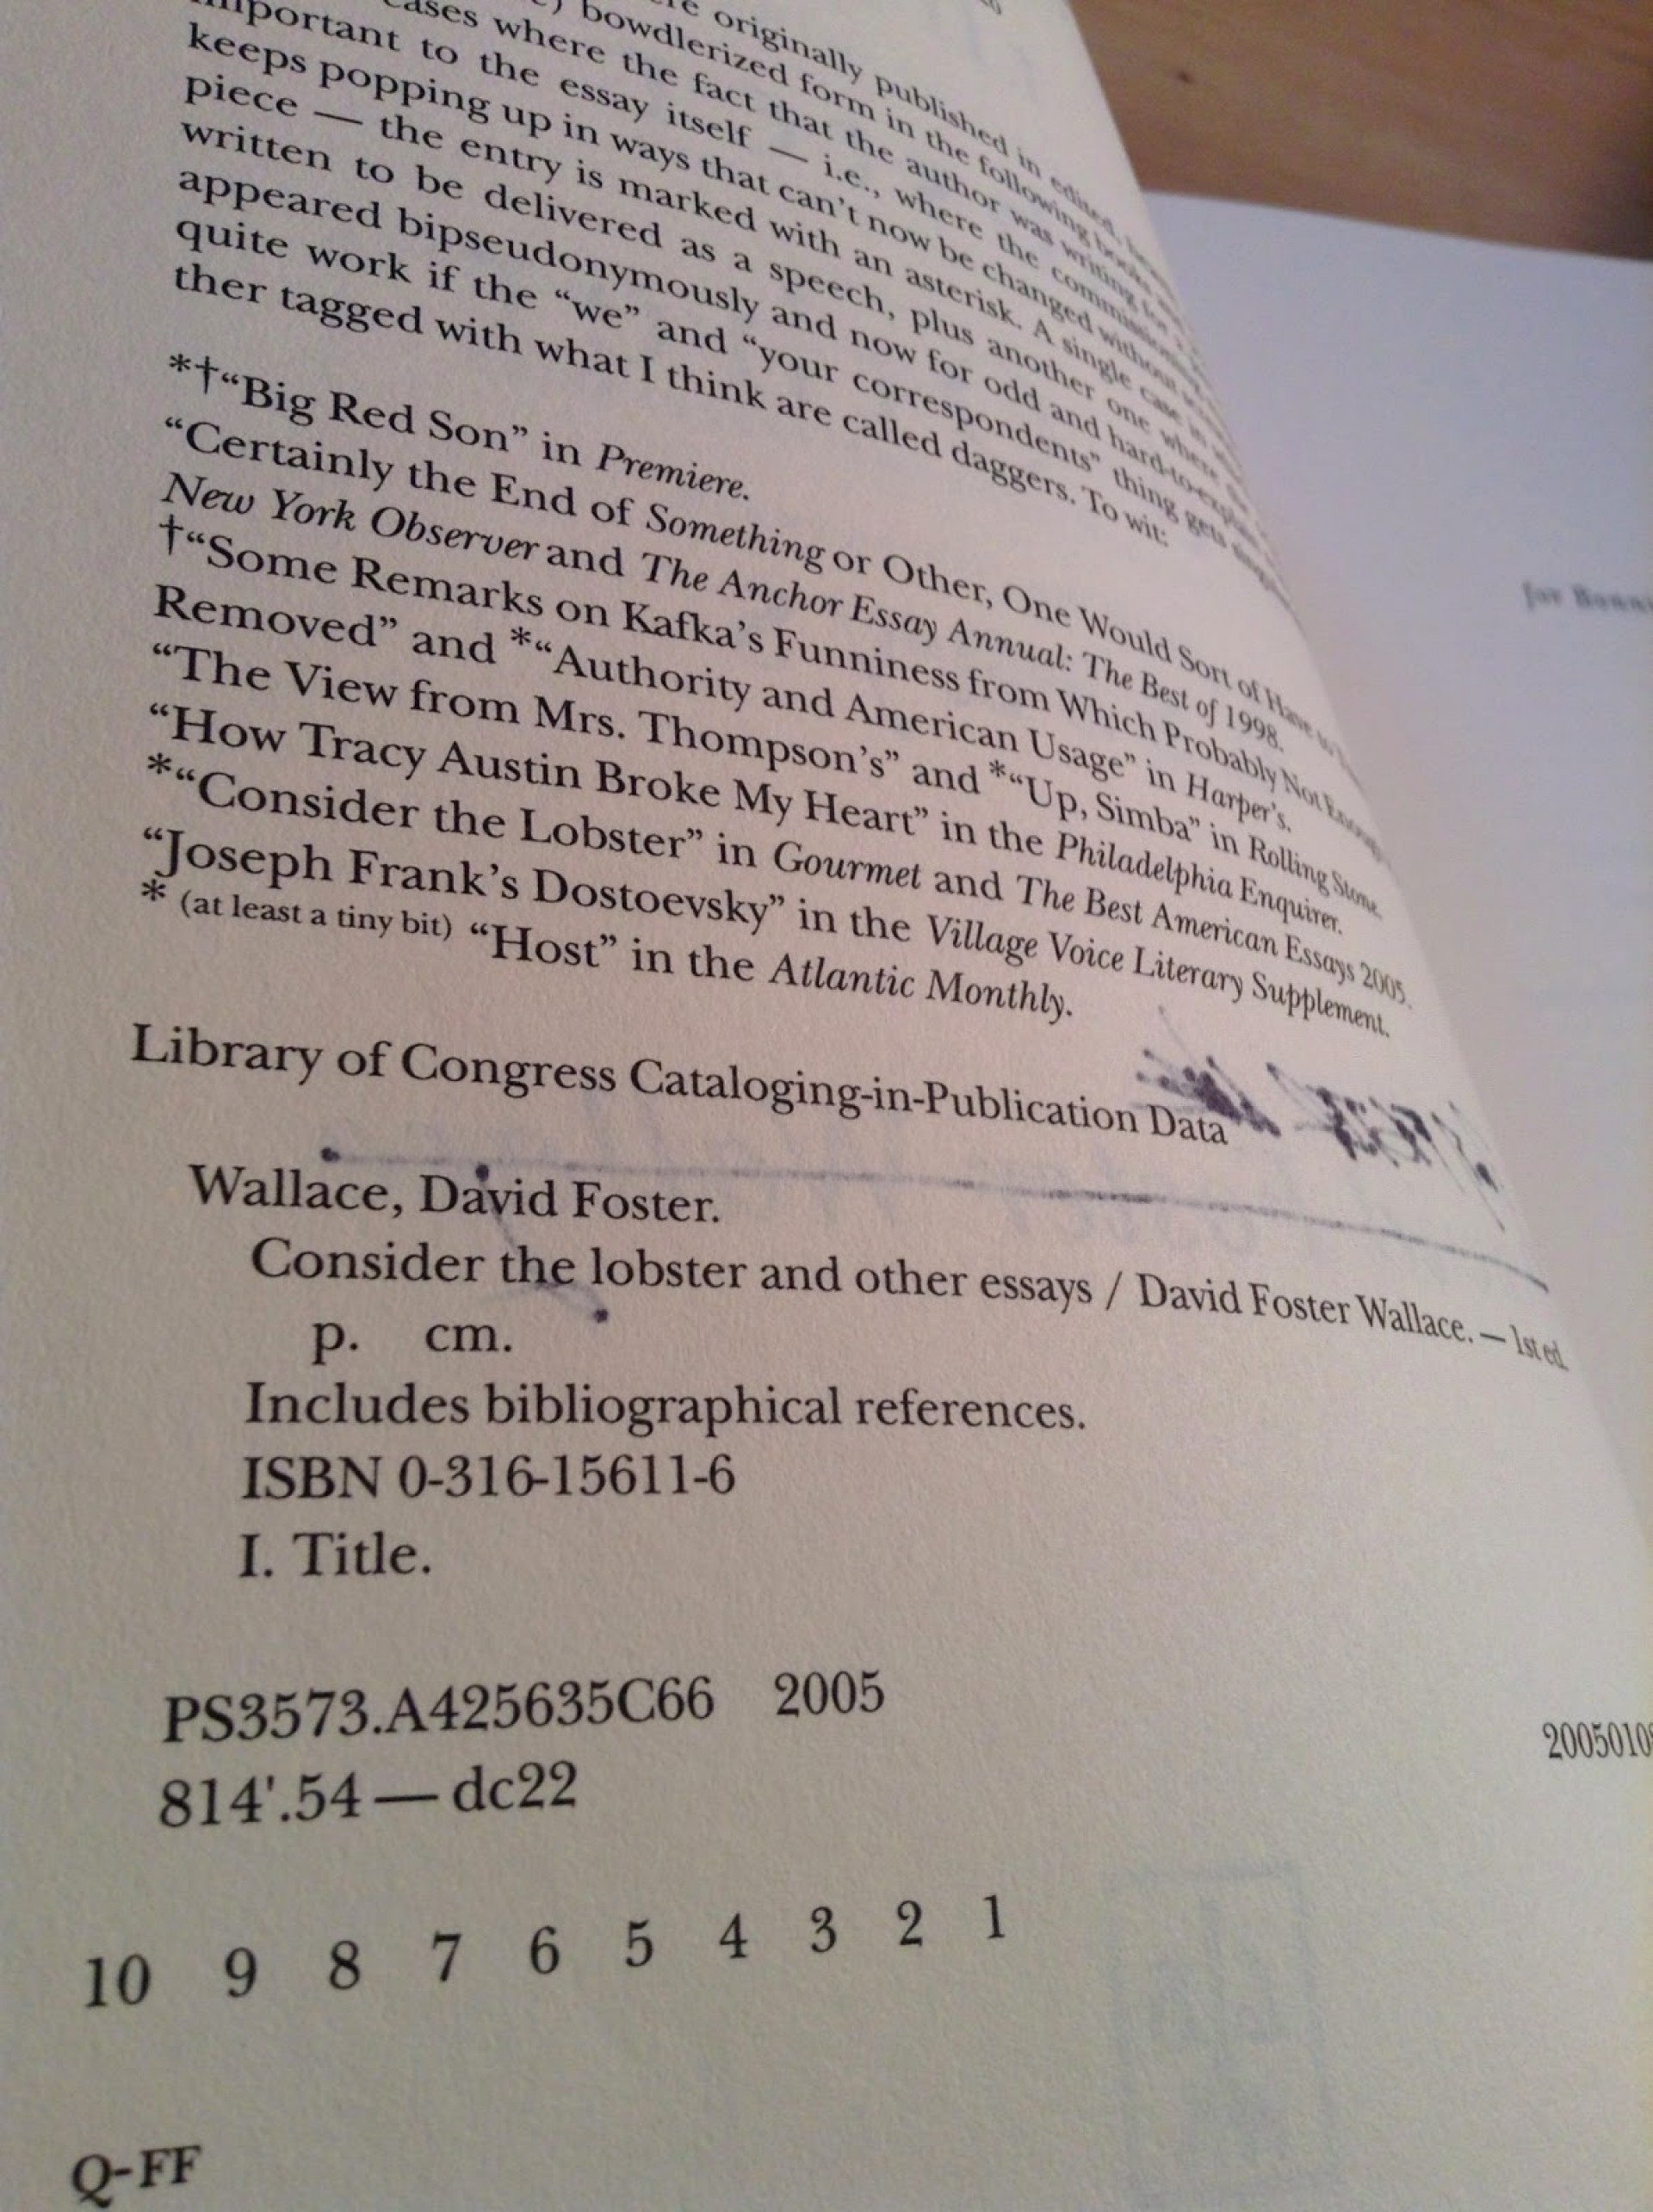 006 Photo Essay Example Consider The Exceptional Lobster Rhetorical Analysis And Other Essays Summary 1920